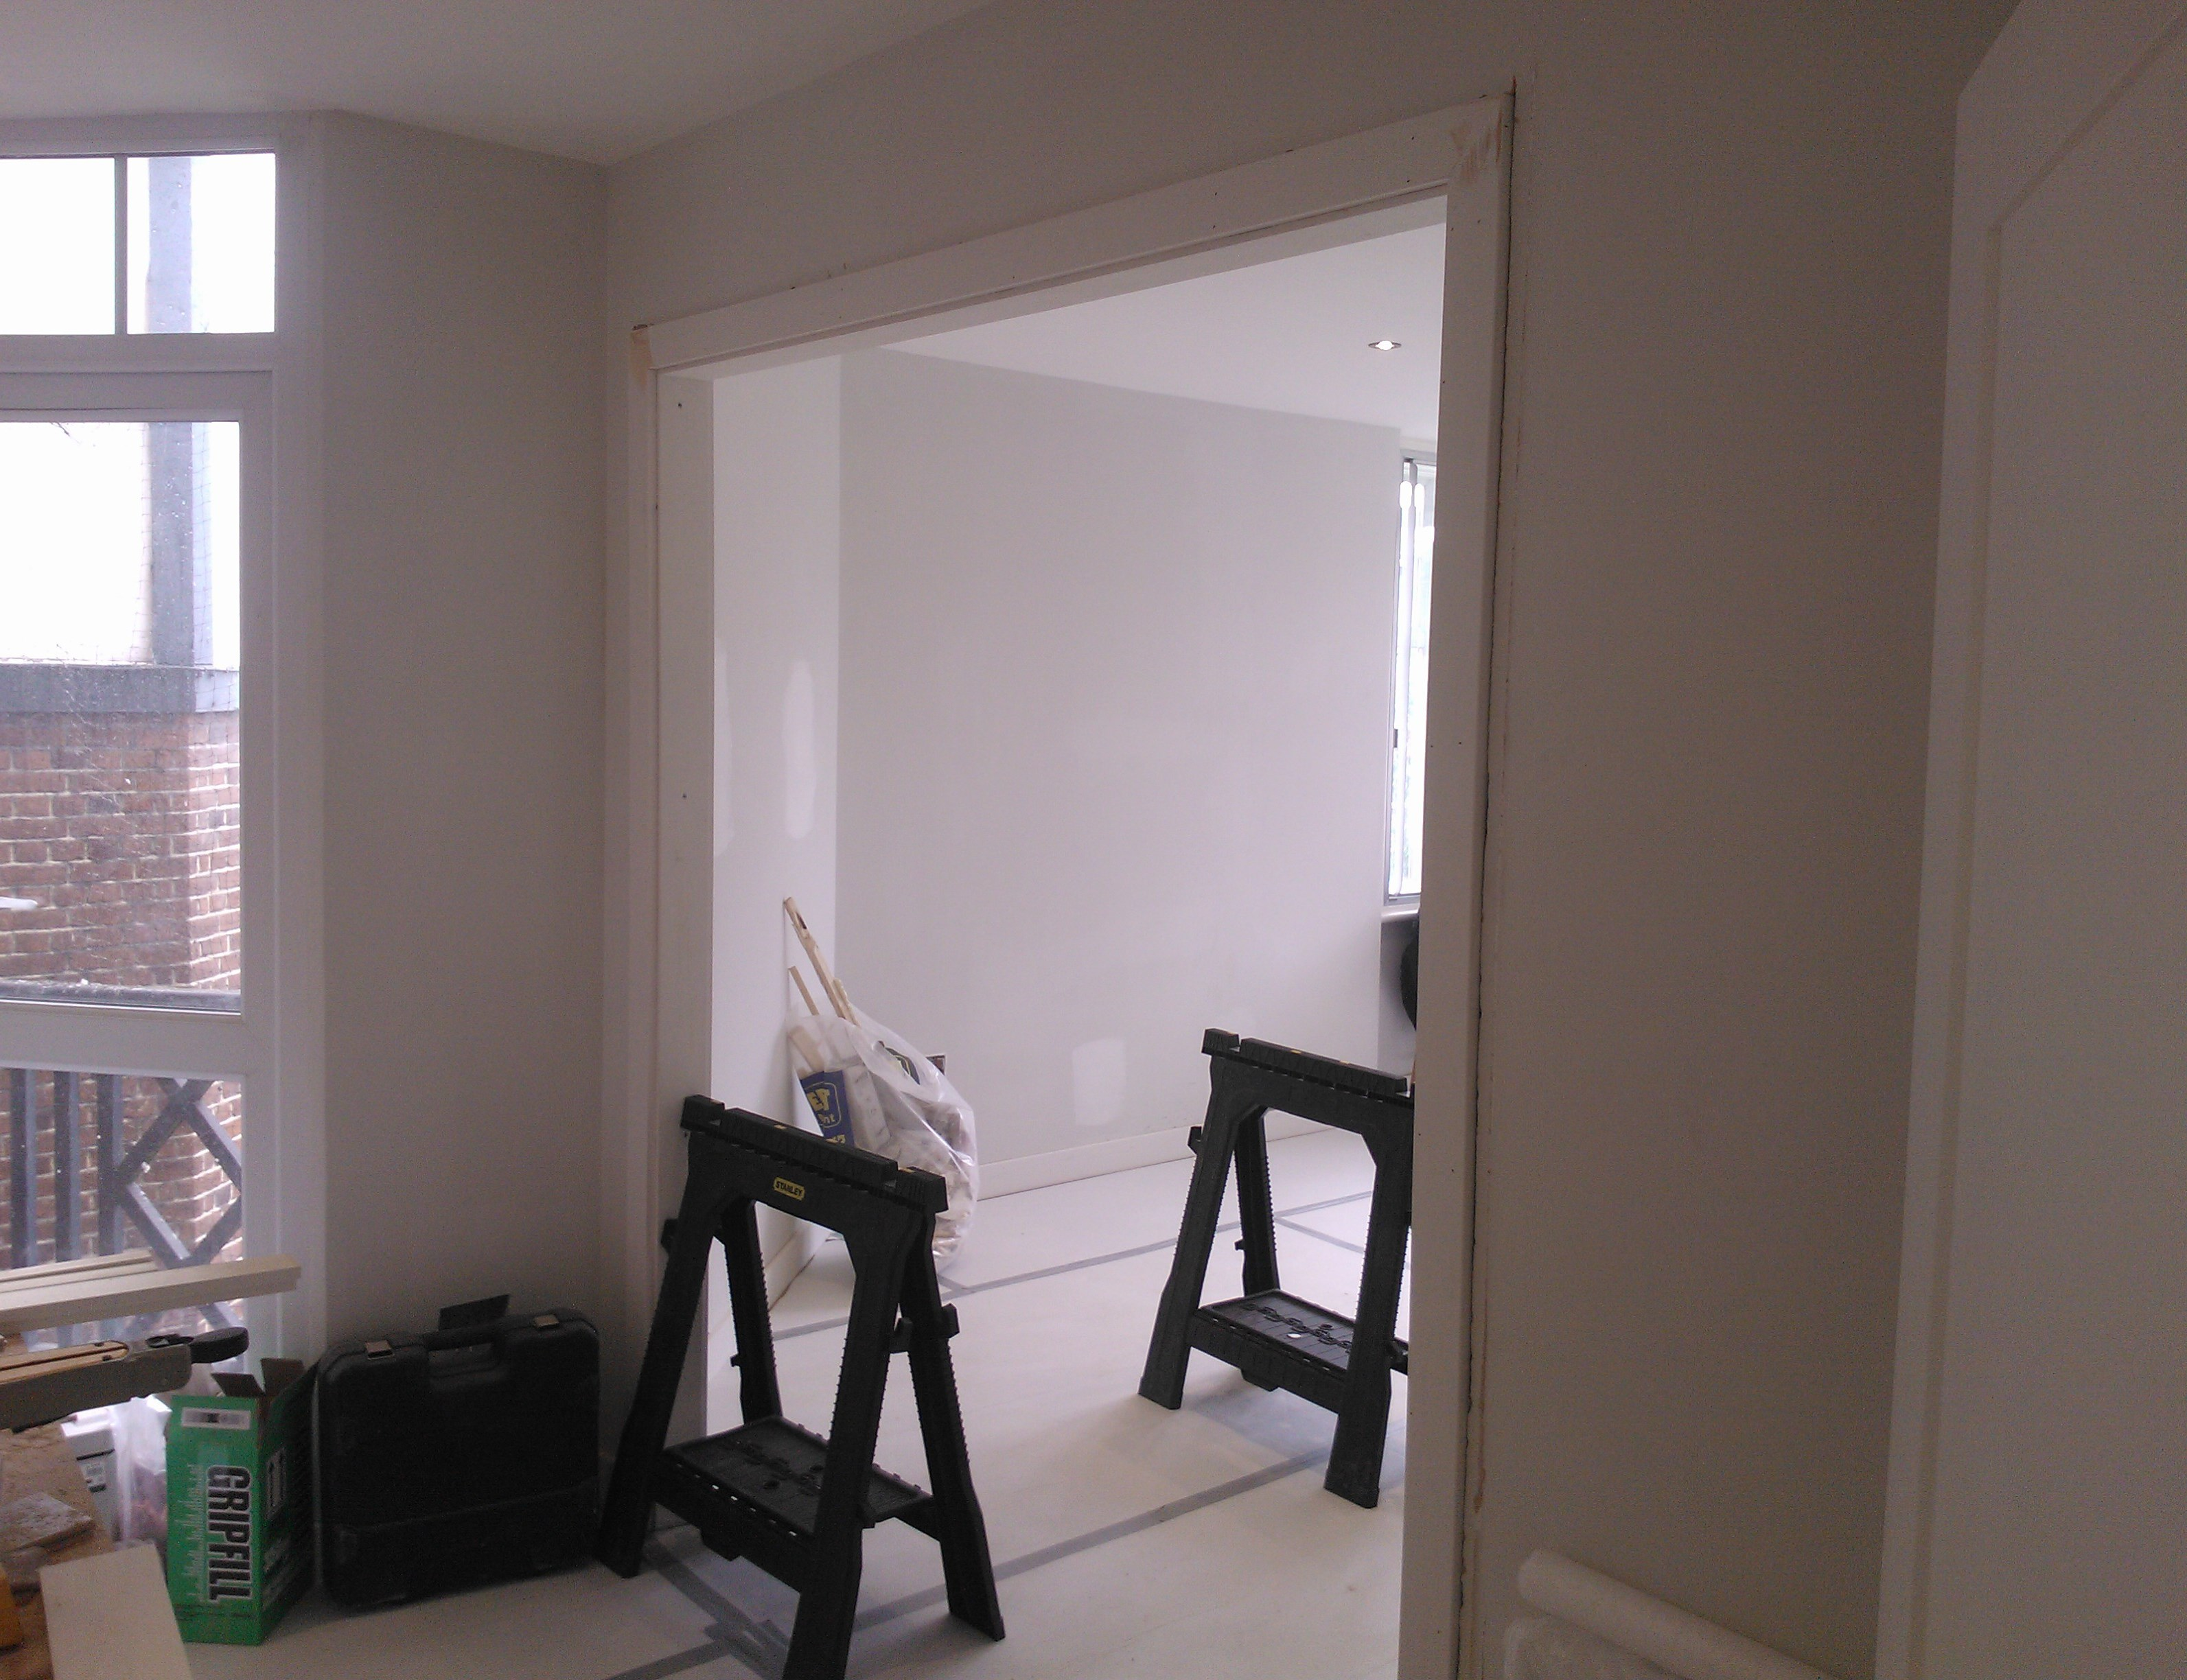 Finchley_Flat refurbishement_ (11)